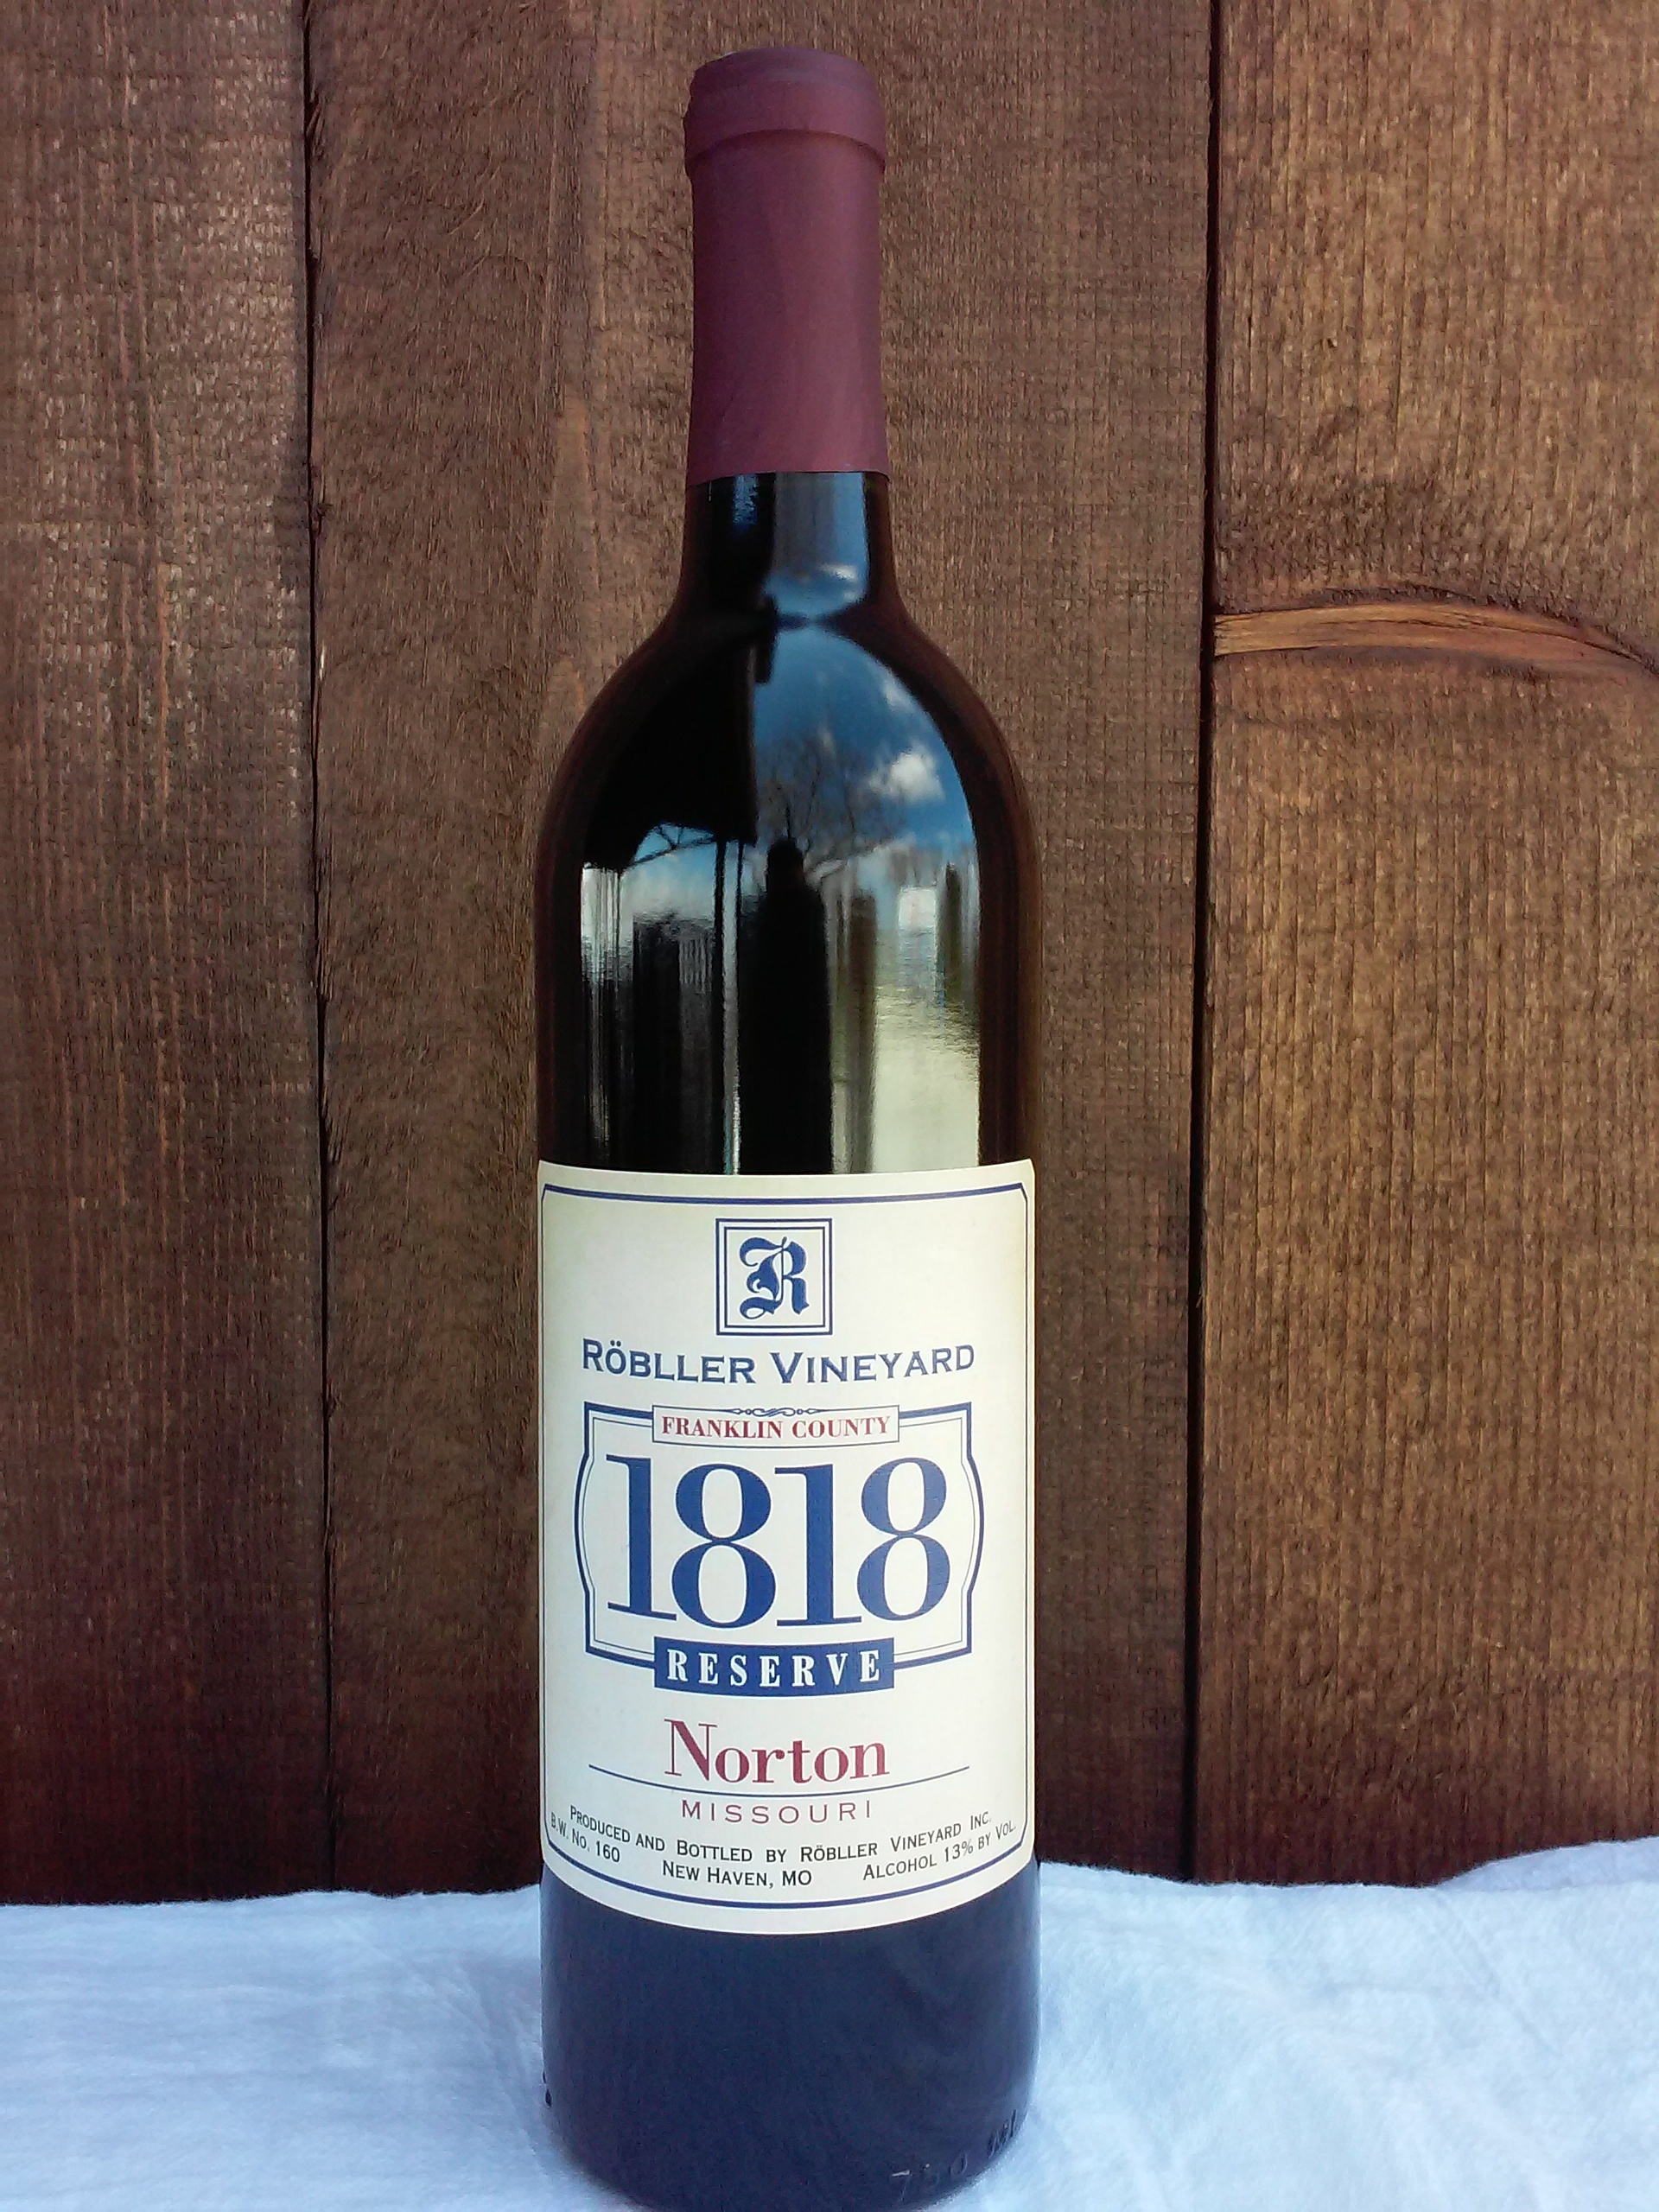 1818 Reserve Norton - With this 2015 Reserve Norton, we commemorate the bicentennial of Franklin County. Our state grape and only true native wine grape of the New World, Norton has been in existence as long as our great county.From our 25-plus-year-old vines, the 2015 vintage created exceptional fruit full of land character, structure and balance. The finished wine was initially refined for two years in neutral Missouri White and Chinkapin Oak barrels with an additional year in new heavy toast Chinkapin barrels, creating a robust yet elegant wine of distinction. This limited production wine can be enjoyed today and will enhance with cellaring.